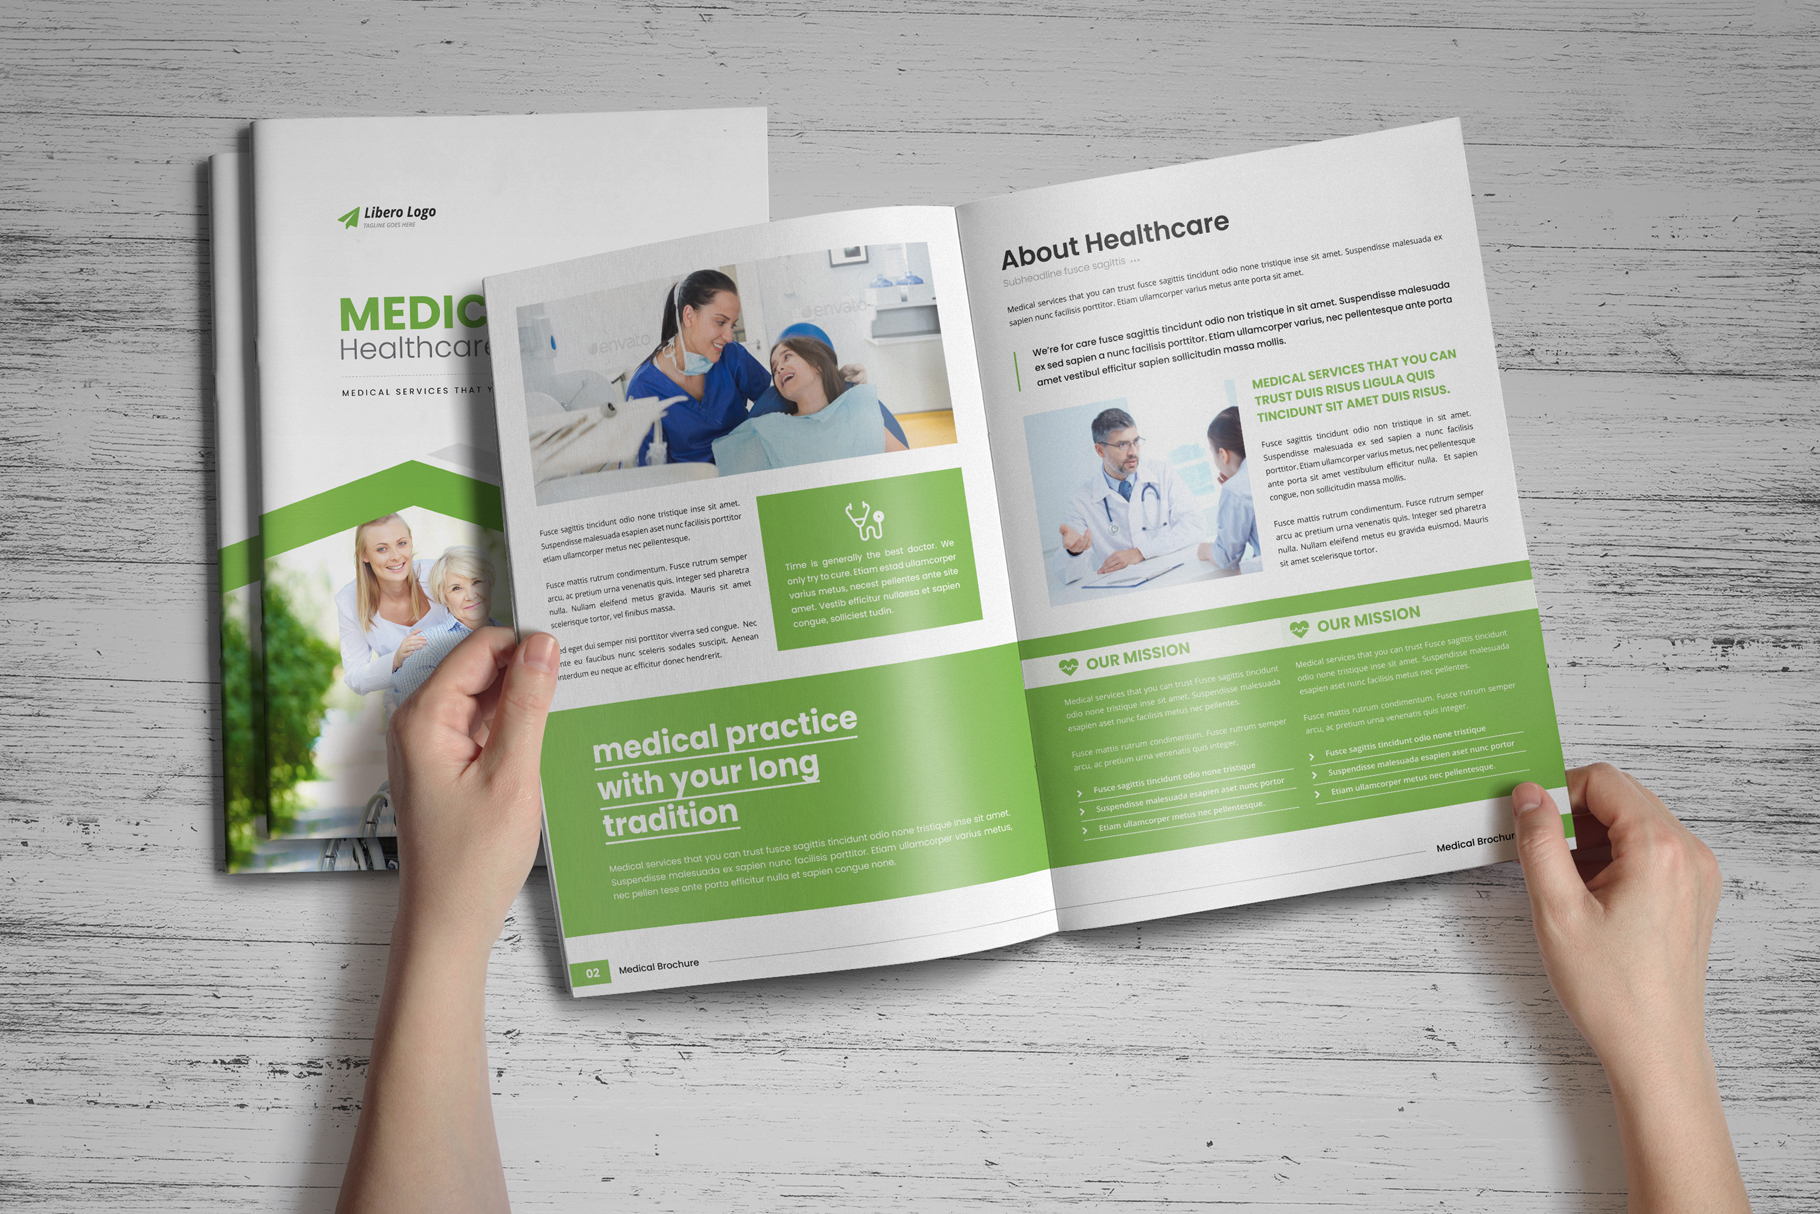 Medical HealthCare Brochure v6 example image 10